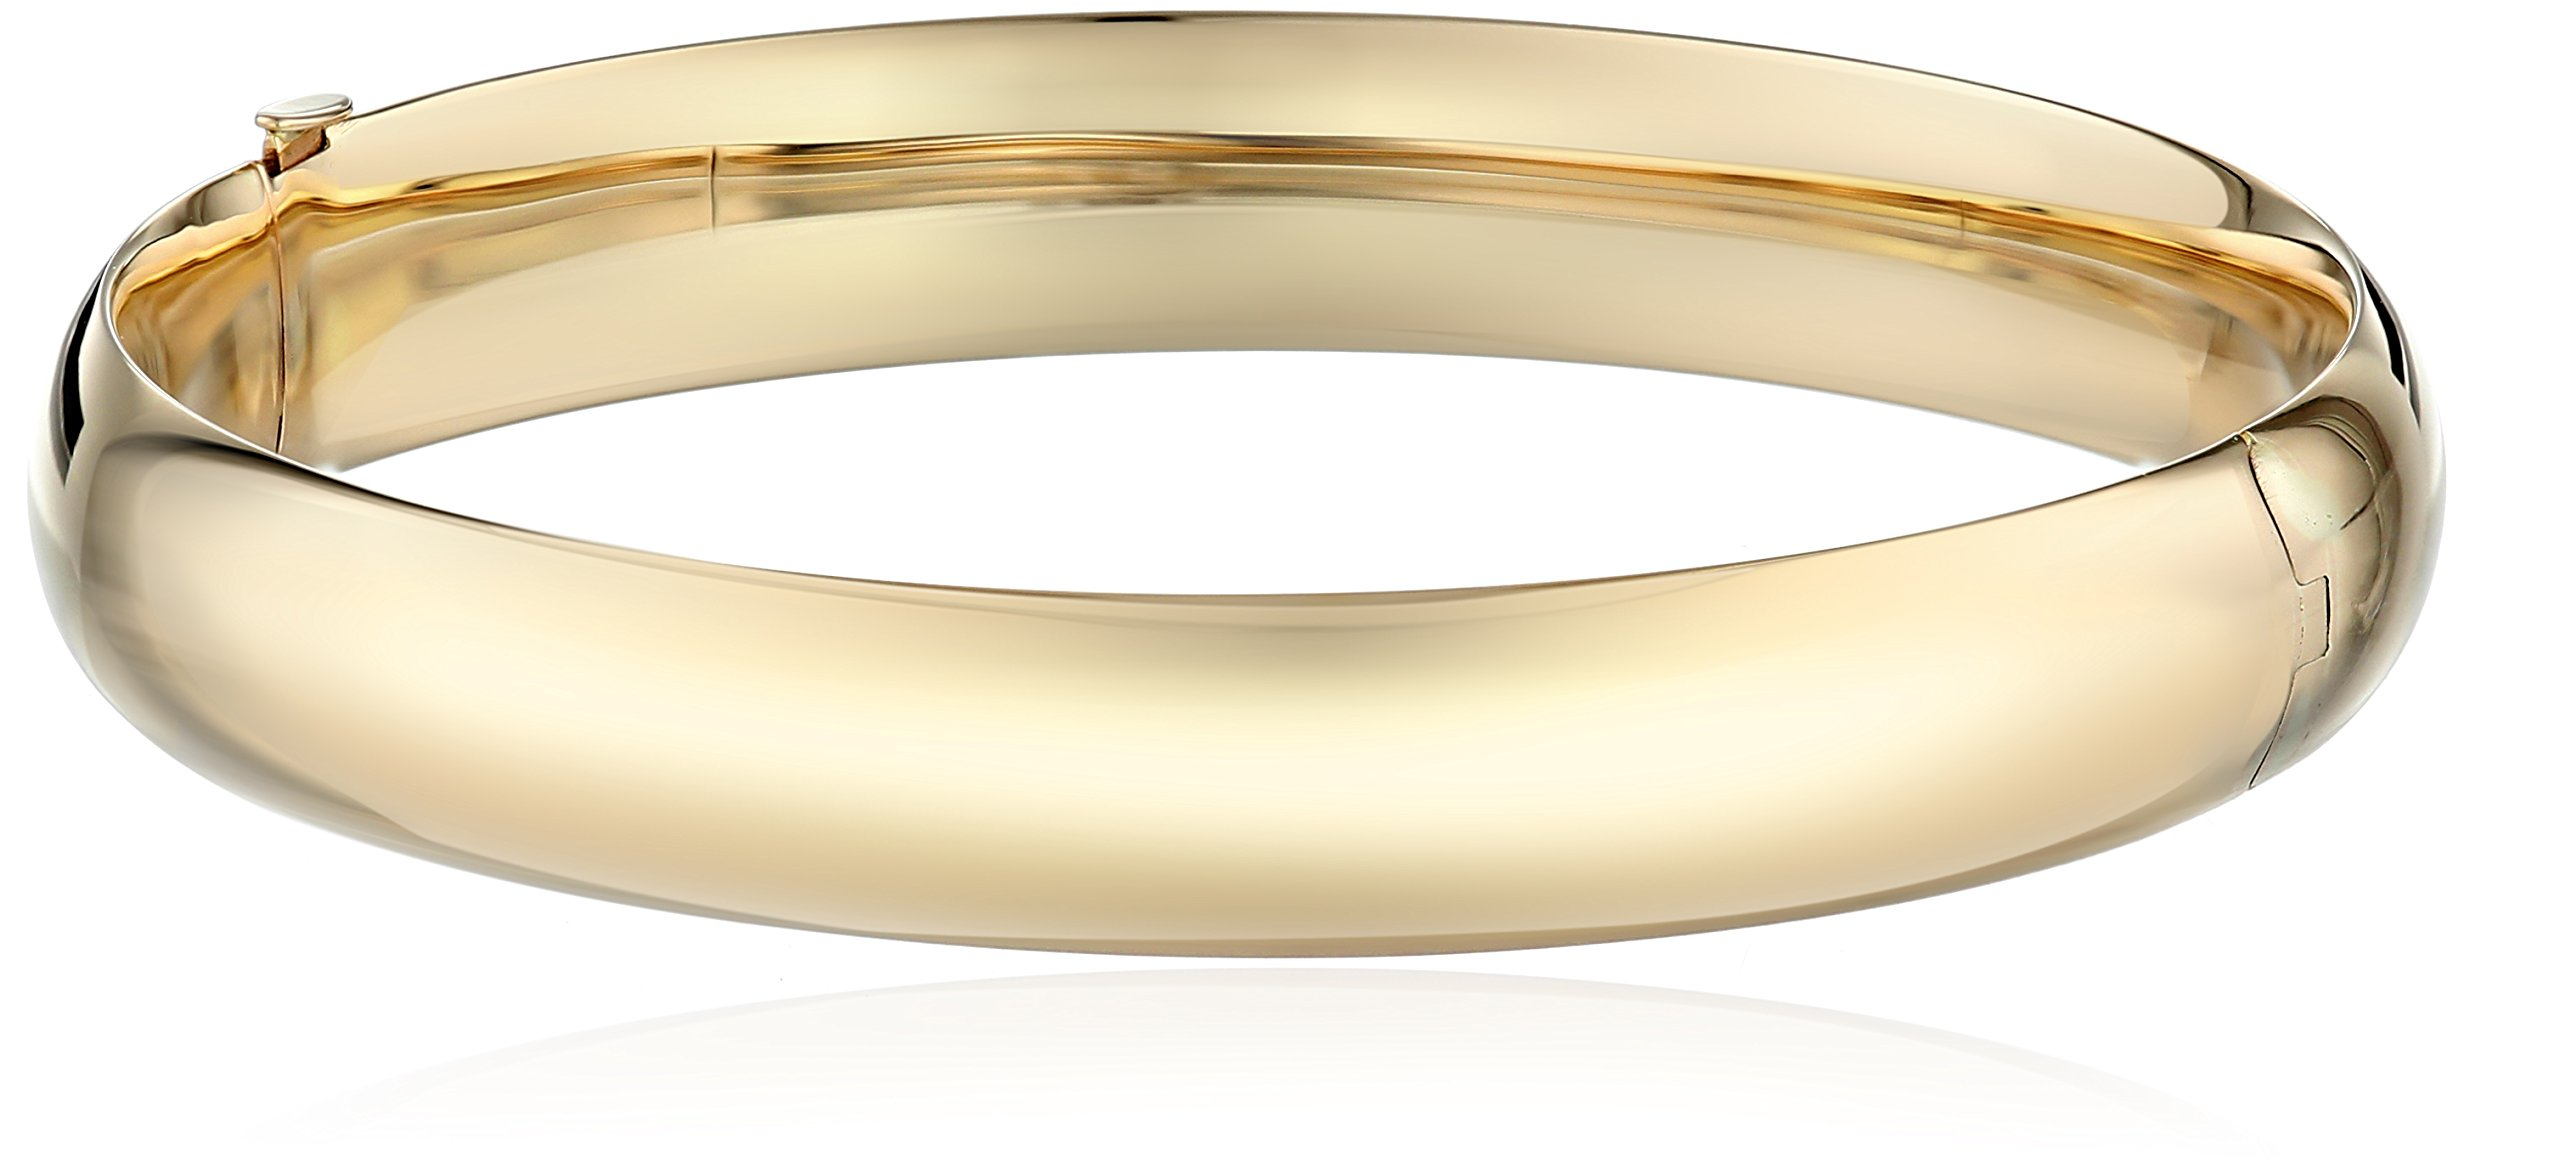 14k Yellow Gold Polished Bangle Bracelet (10.5mm) by Amazon Collection